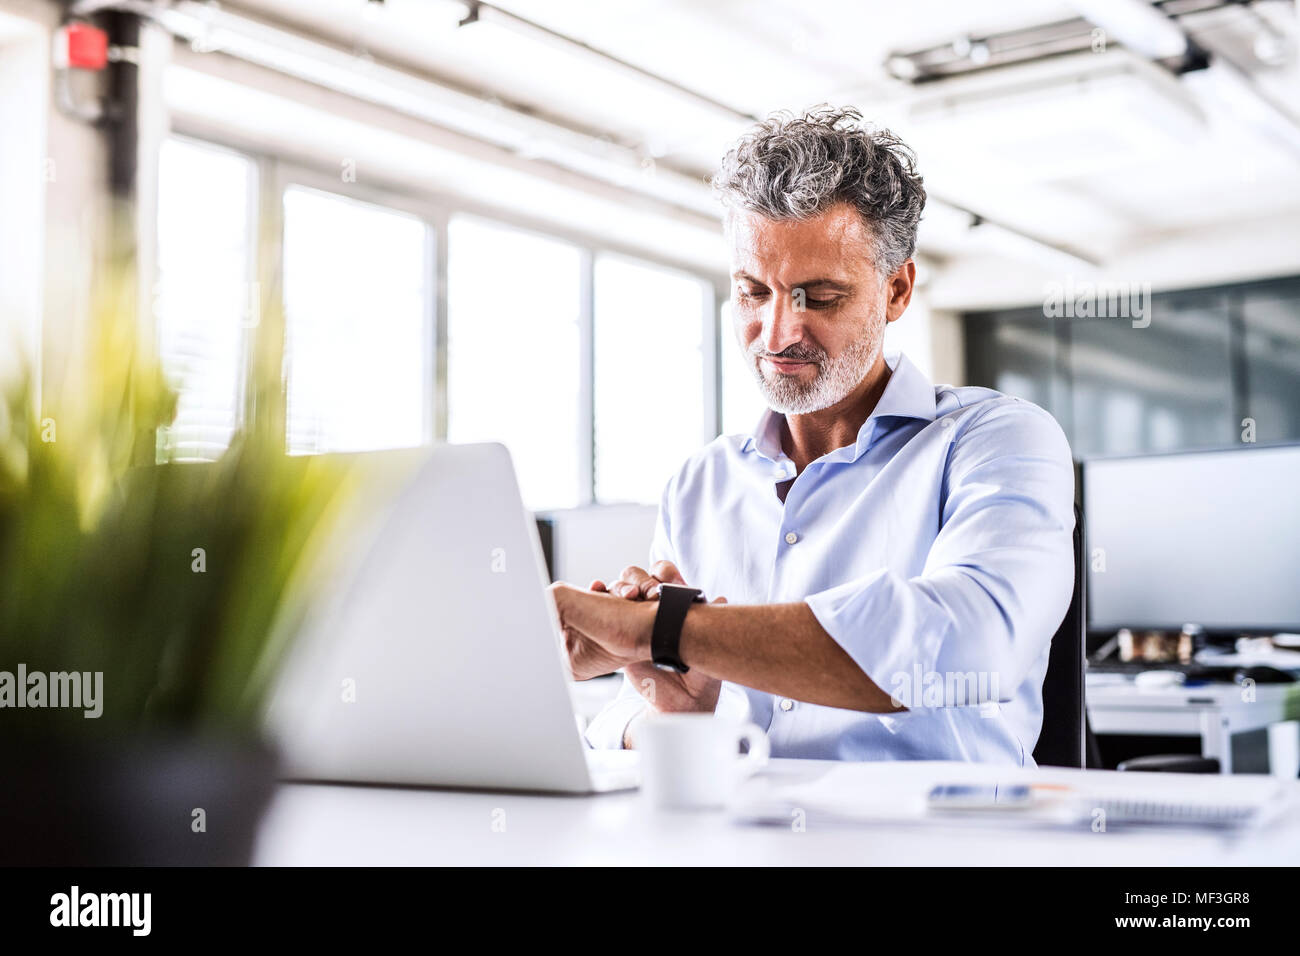 Mature businessman sitting at desk in office looking at smartwatch - Stock Image